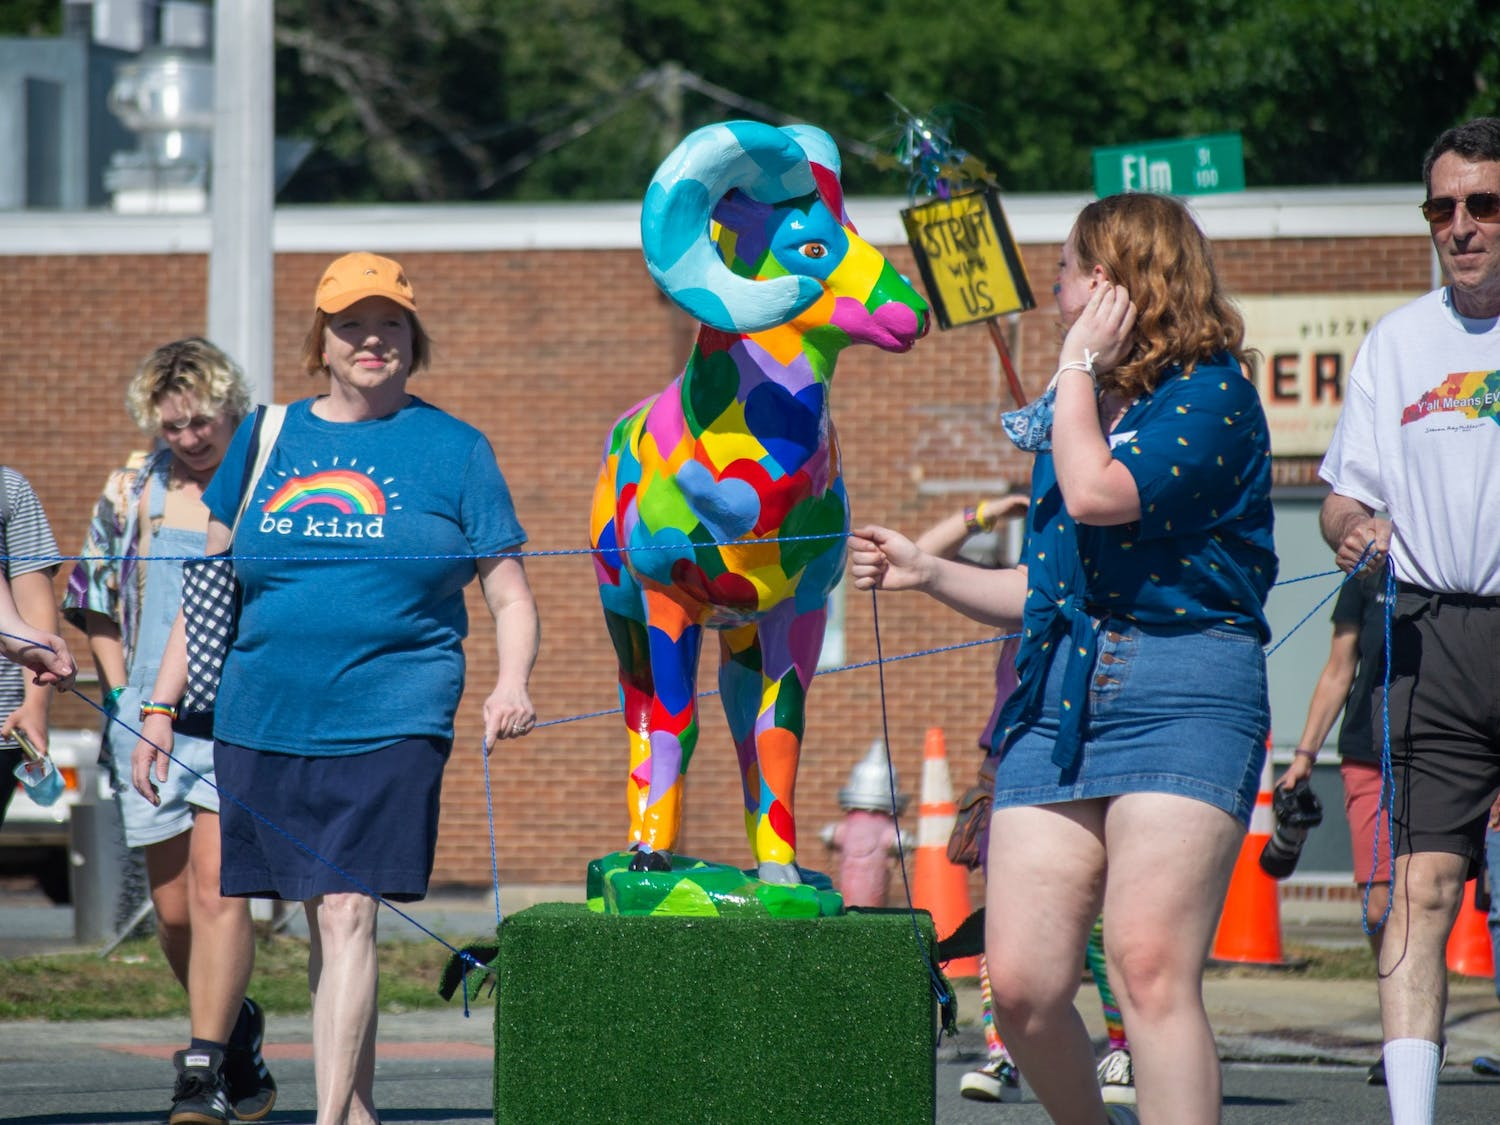 On Thursday, June 24, 2021, community members gathered in Carrboro for the Pride Food Truck Rodeo and Dance Party.